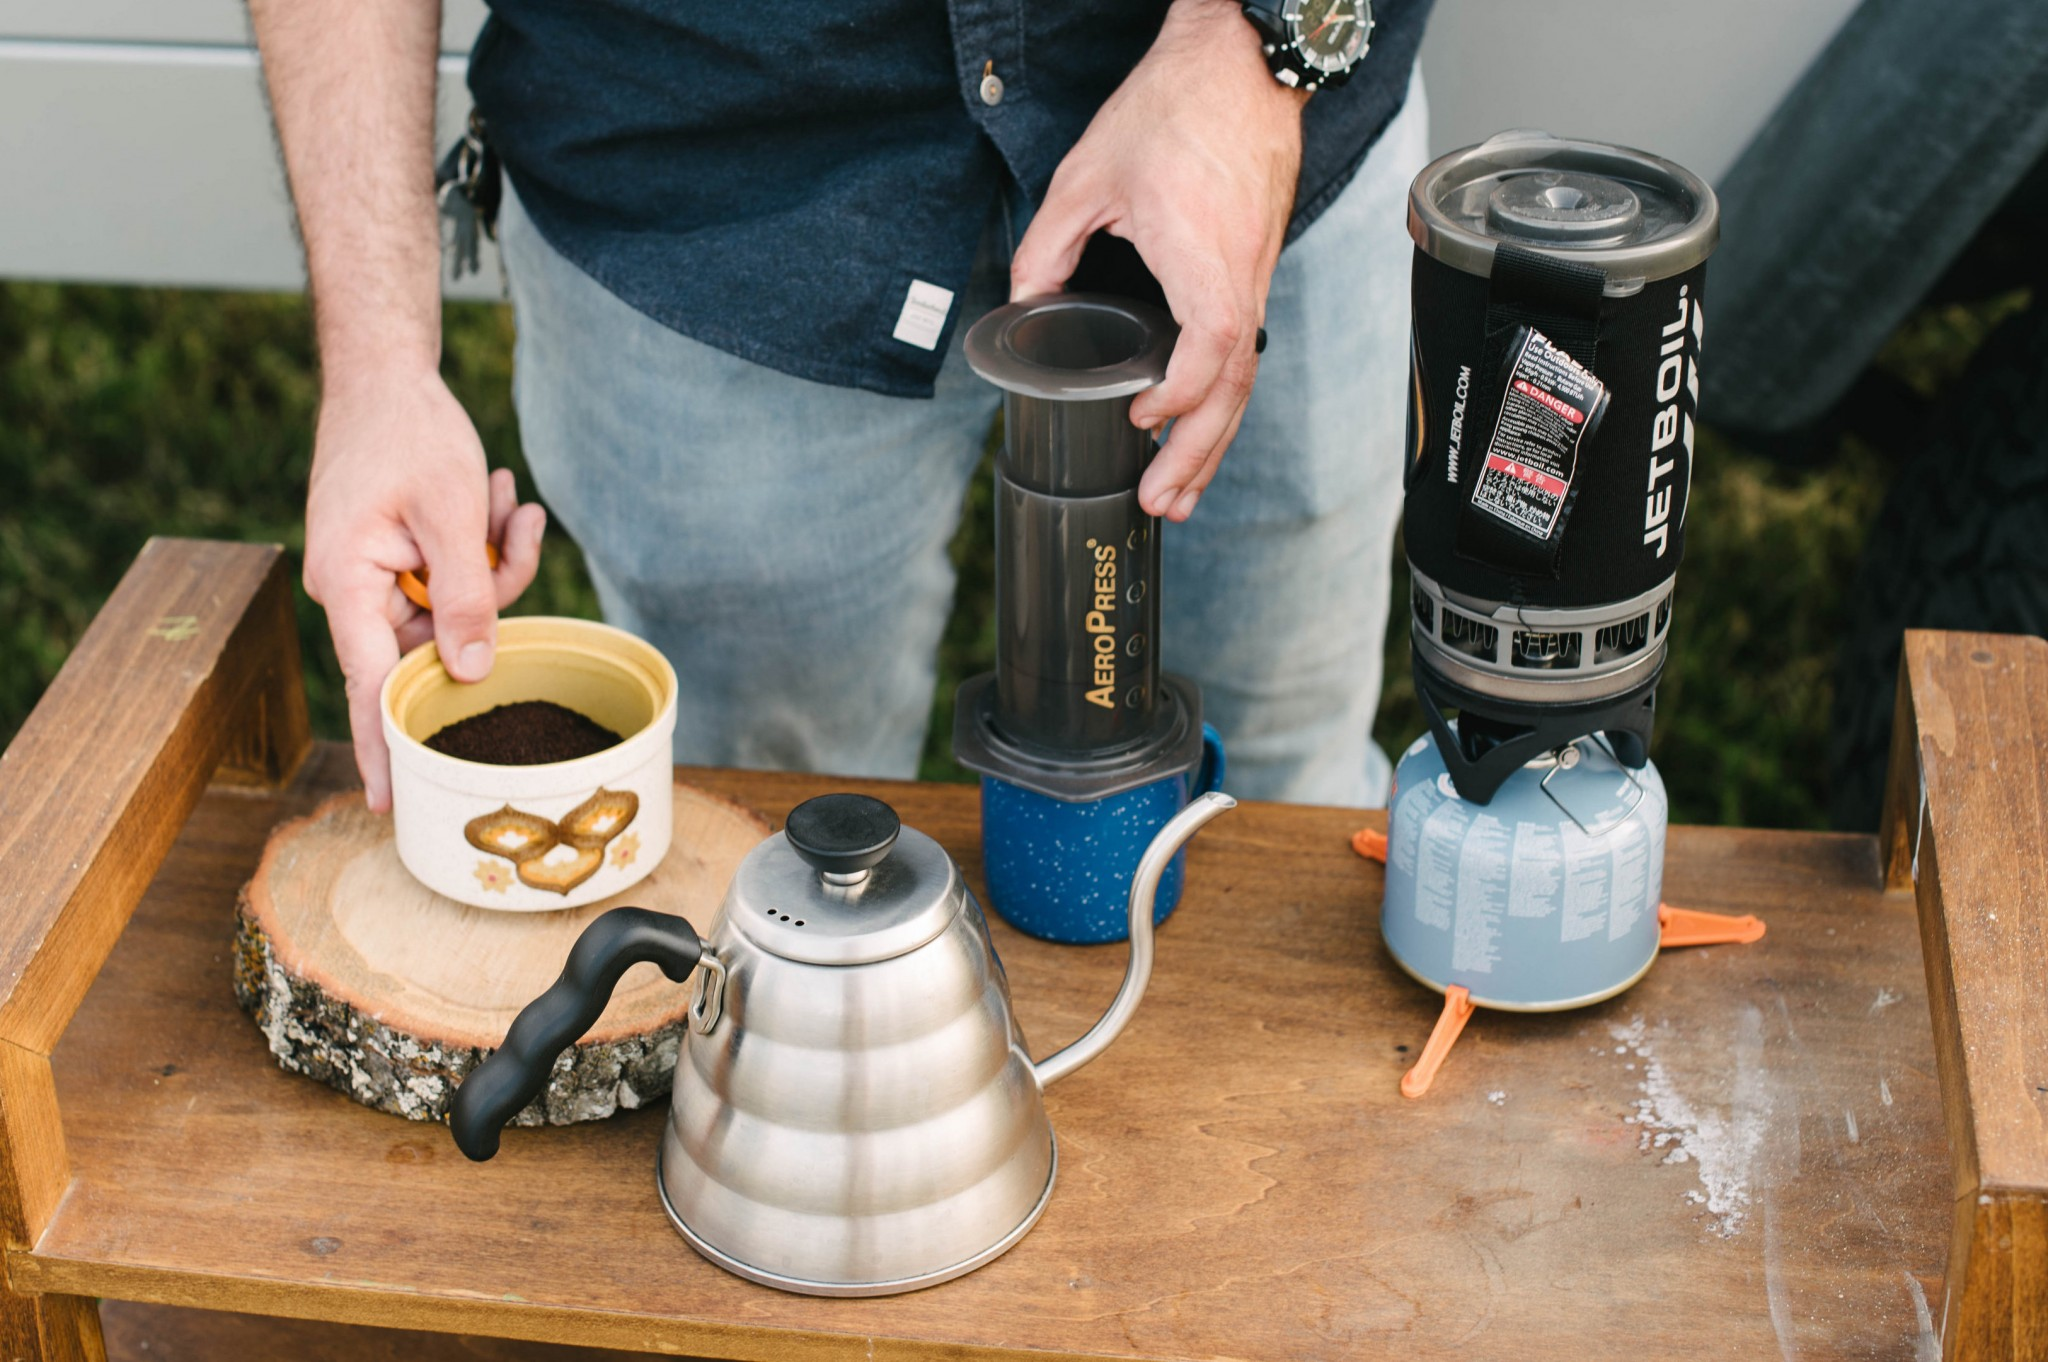 AeroPress Brewing Guide How to Make AeroPress Coffee